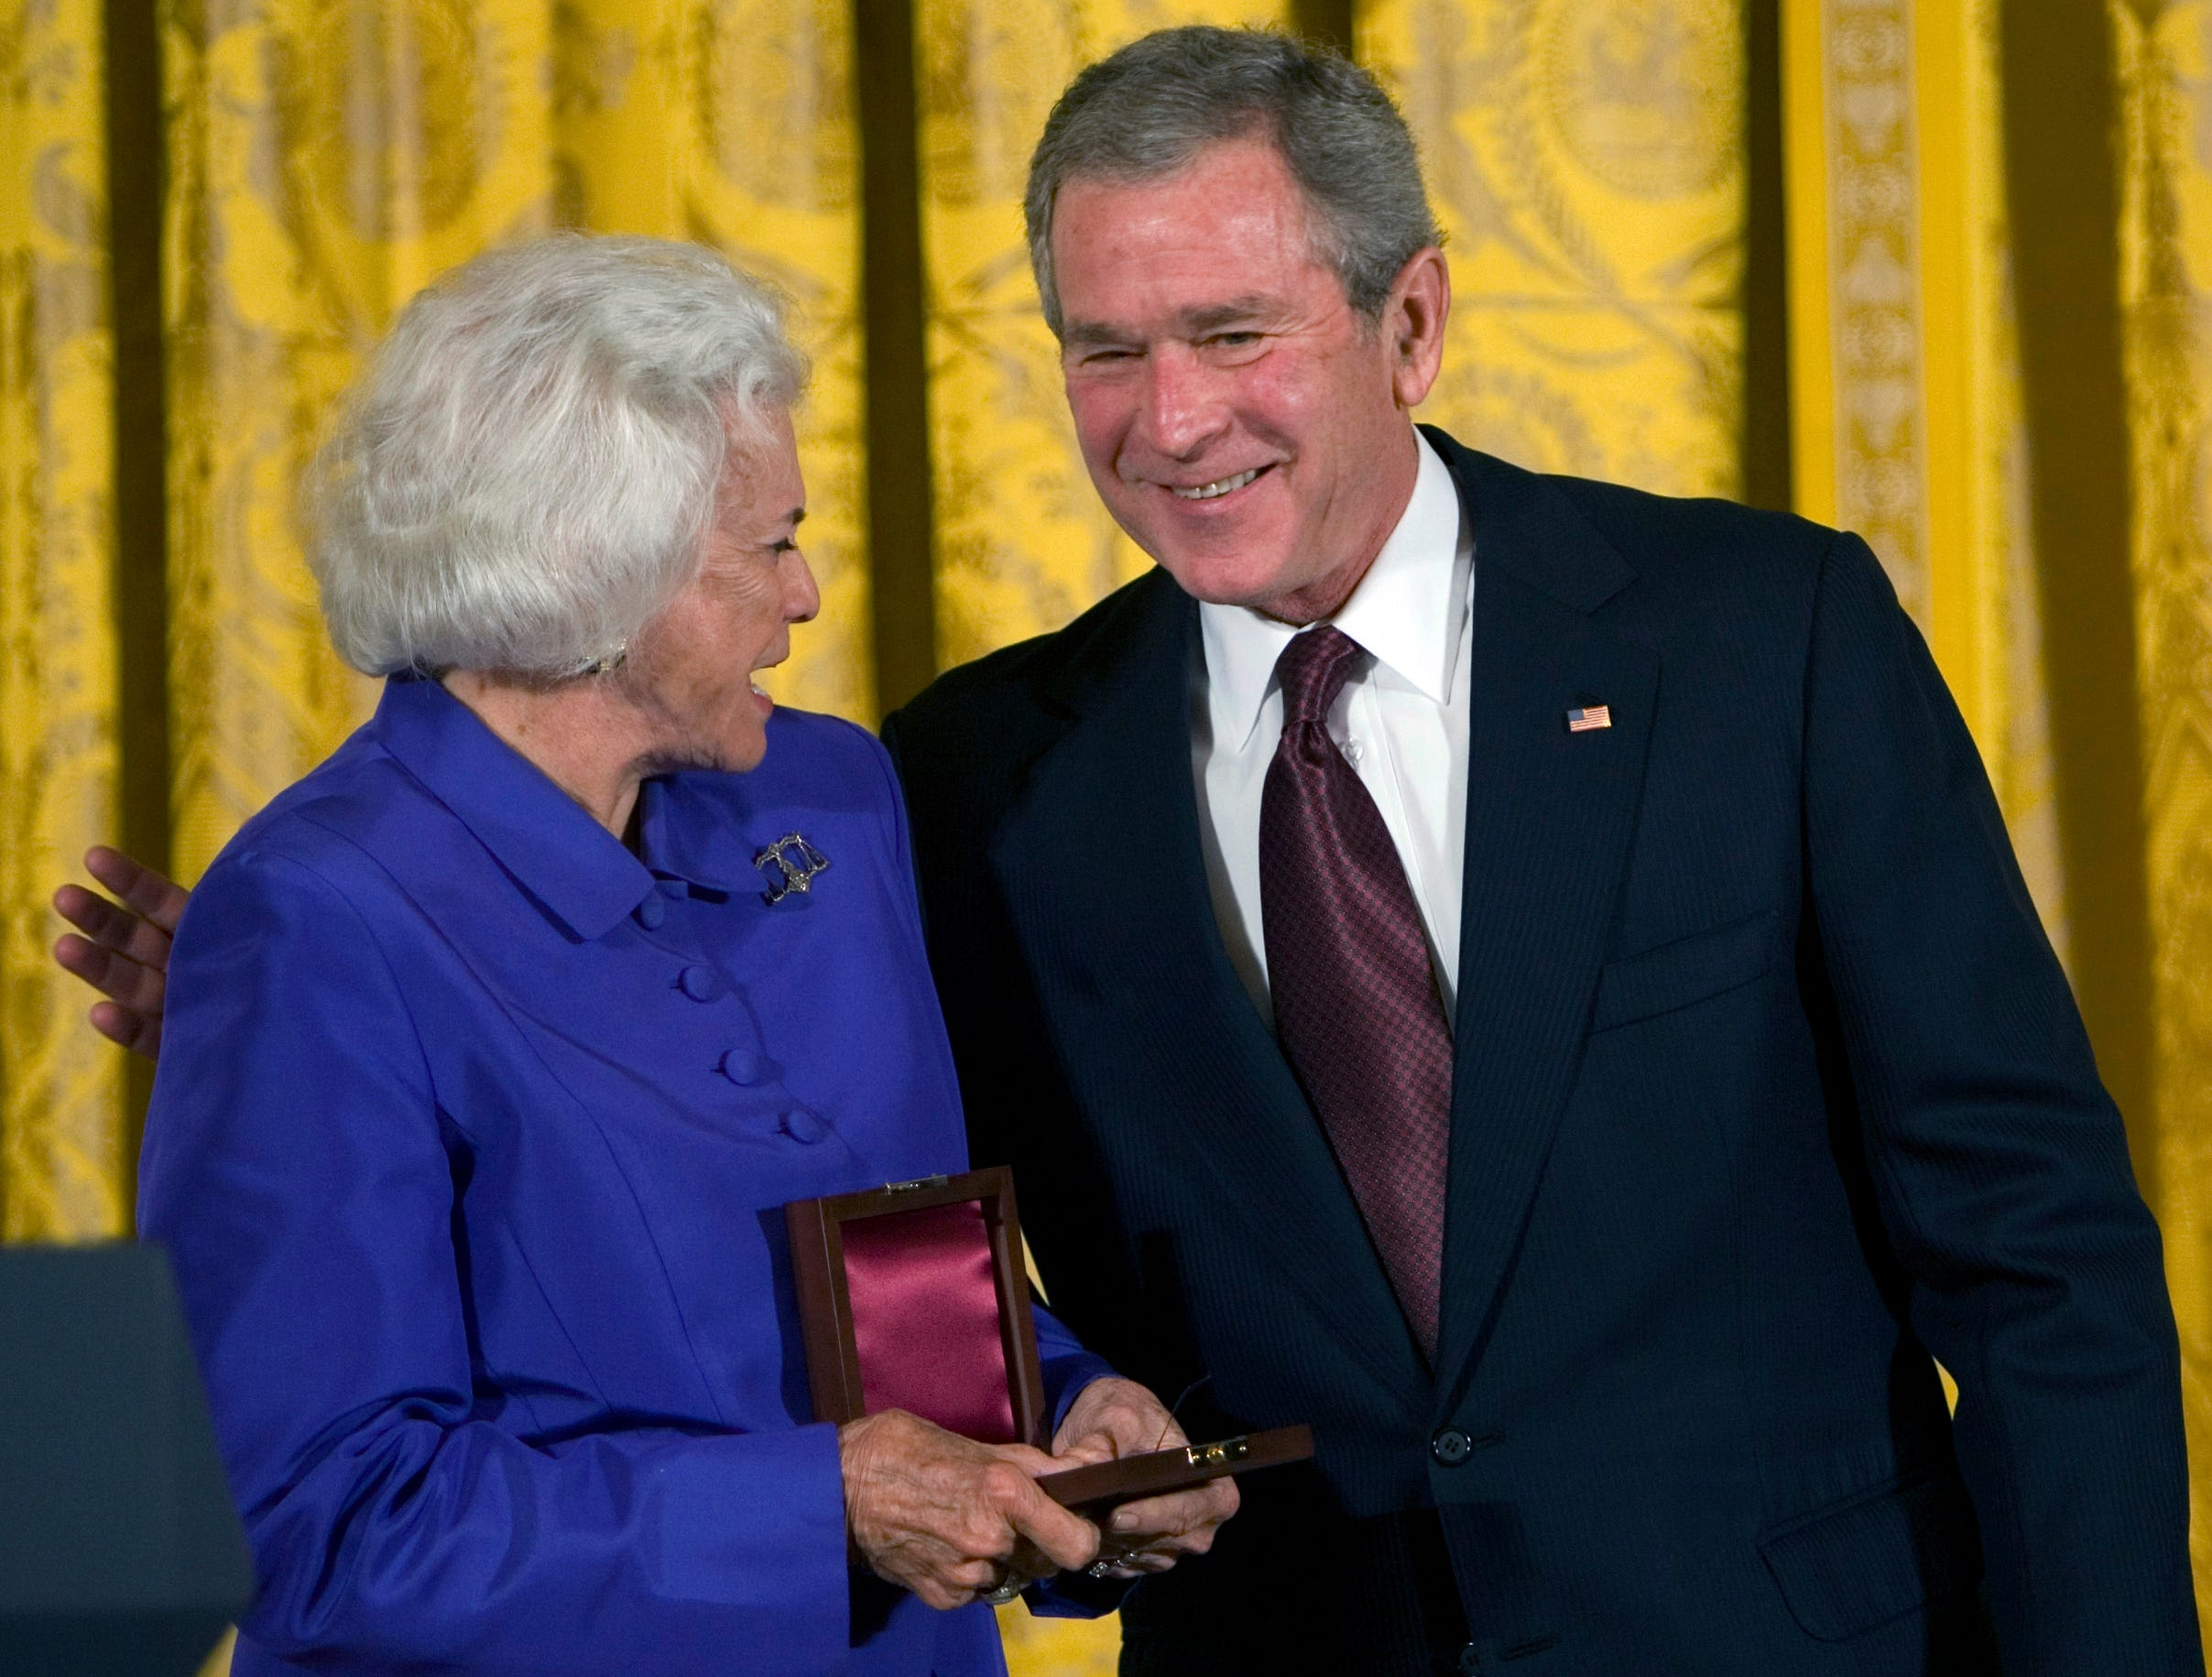 President Bush presents The Lincoln Medal to retired Supreme Court Justice Sandra Day O'Connor, left, during  a ceremony in honor of Abraham Lincoln's 199th birthday, in the East Room of the White House in Washington, Sunday, Feb. 10, 2008.